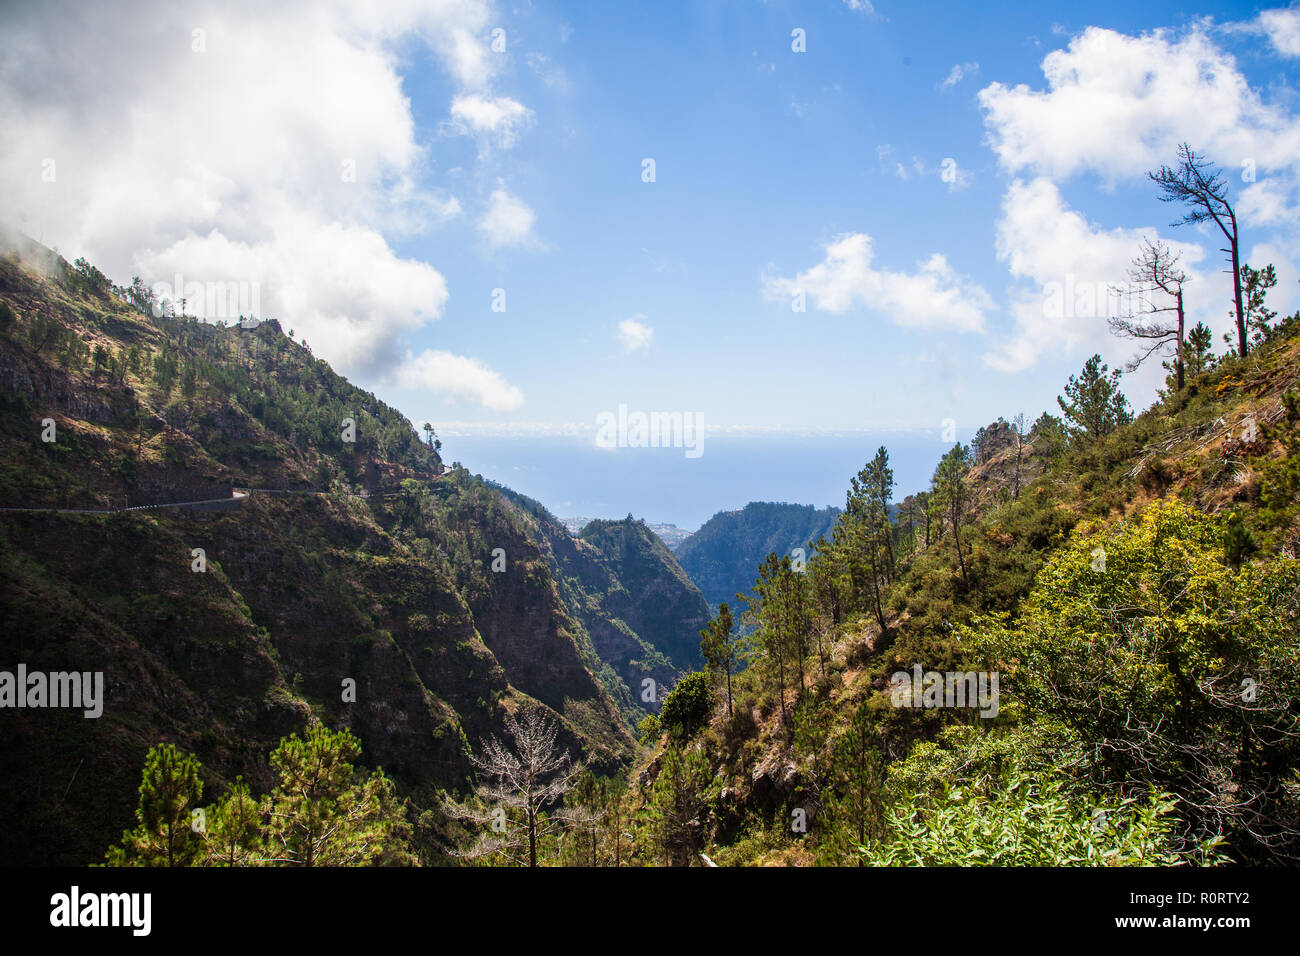 View of Curral das freiras valley, Madeira Island, Portugal - Stock Image